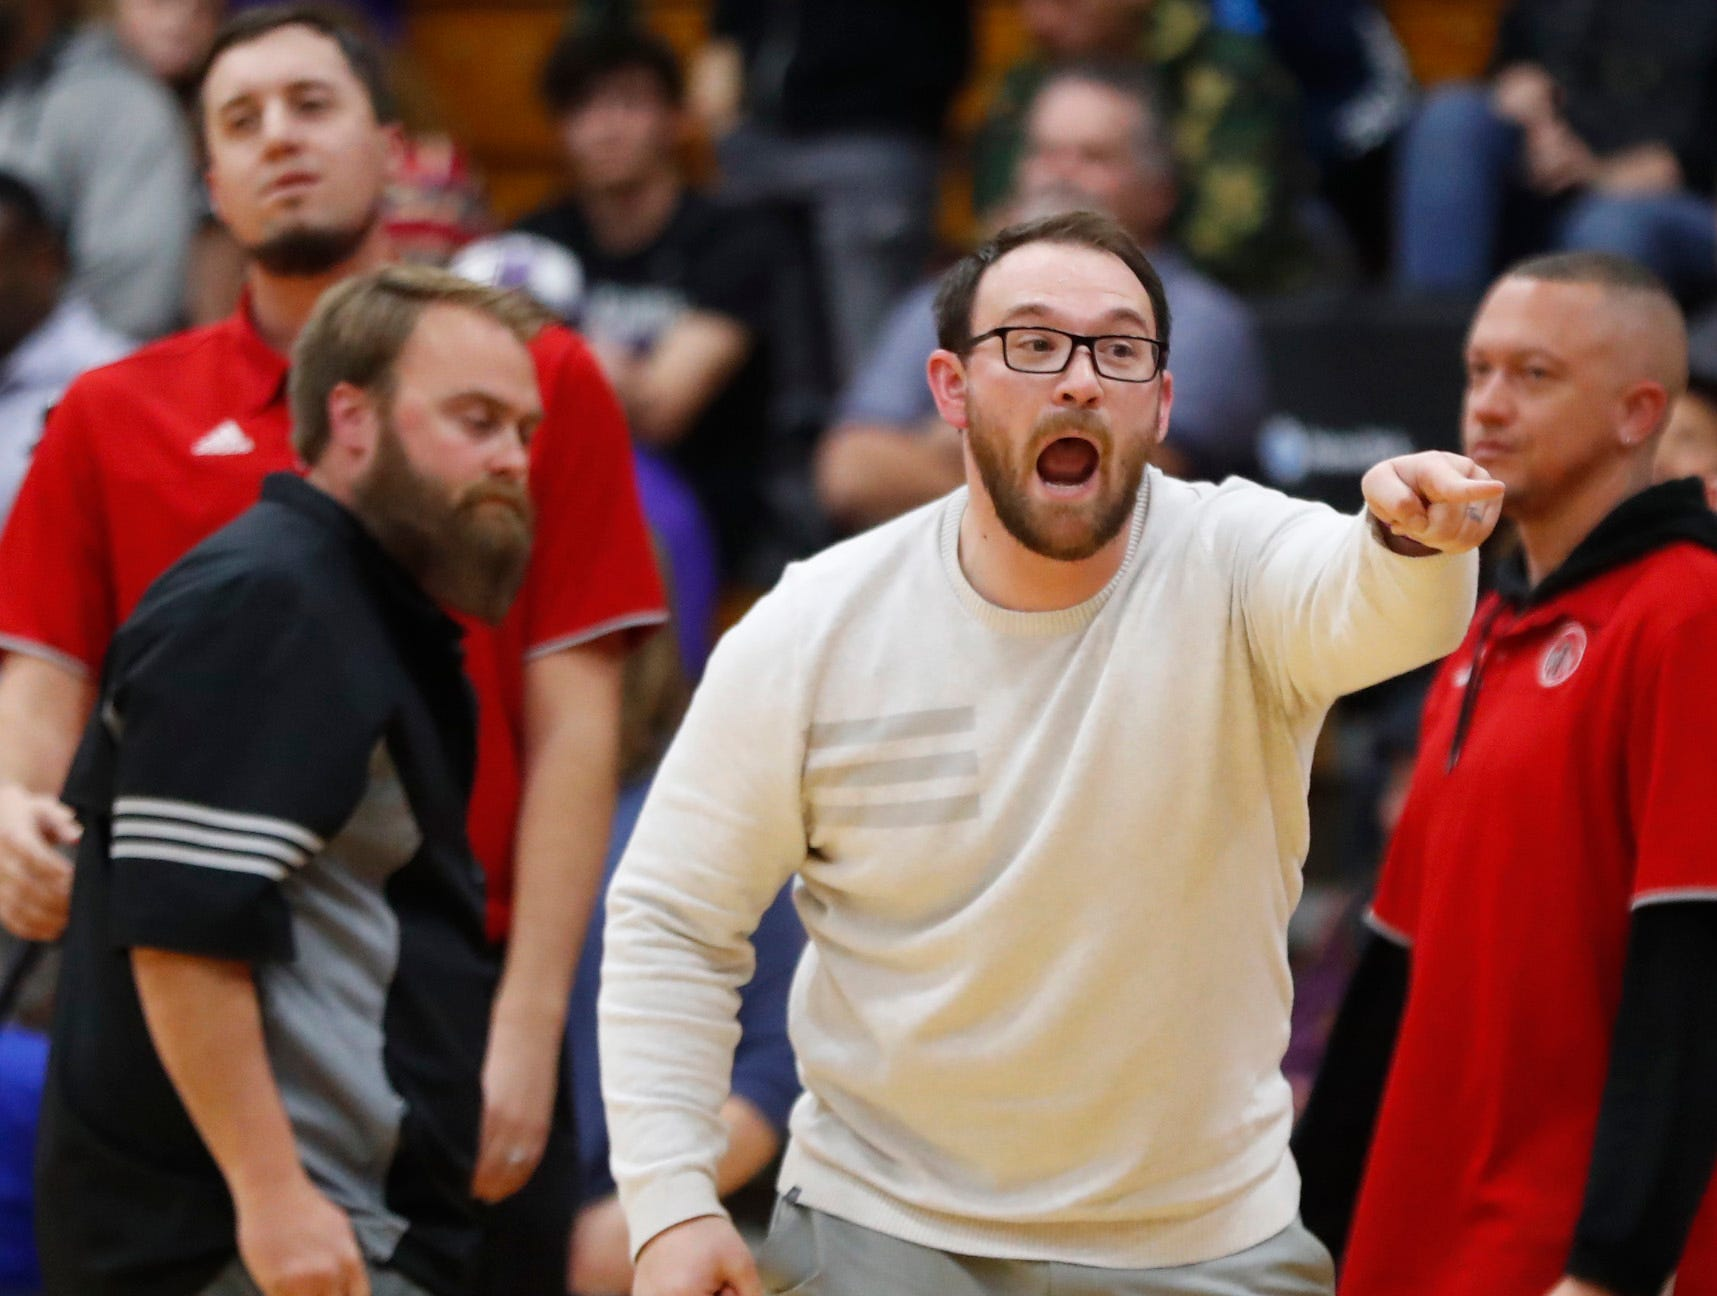 Ironwood's head coach Jordan Augustine yells at officials during the second half of the 5A state quarterfinal game against Millennium at Ironwood High School in Glendale, Ariz. on February 15, 2019.